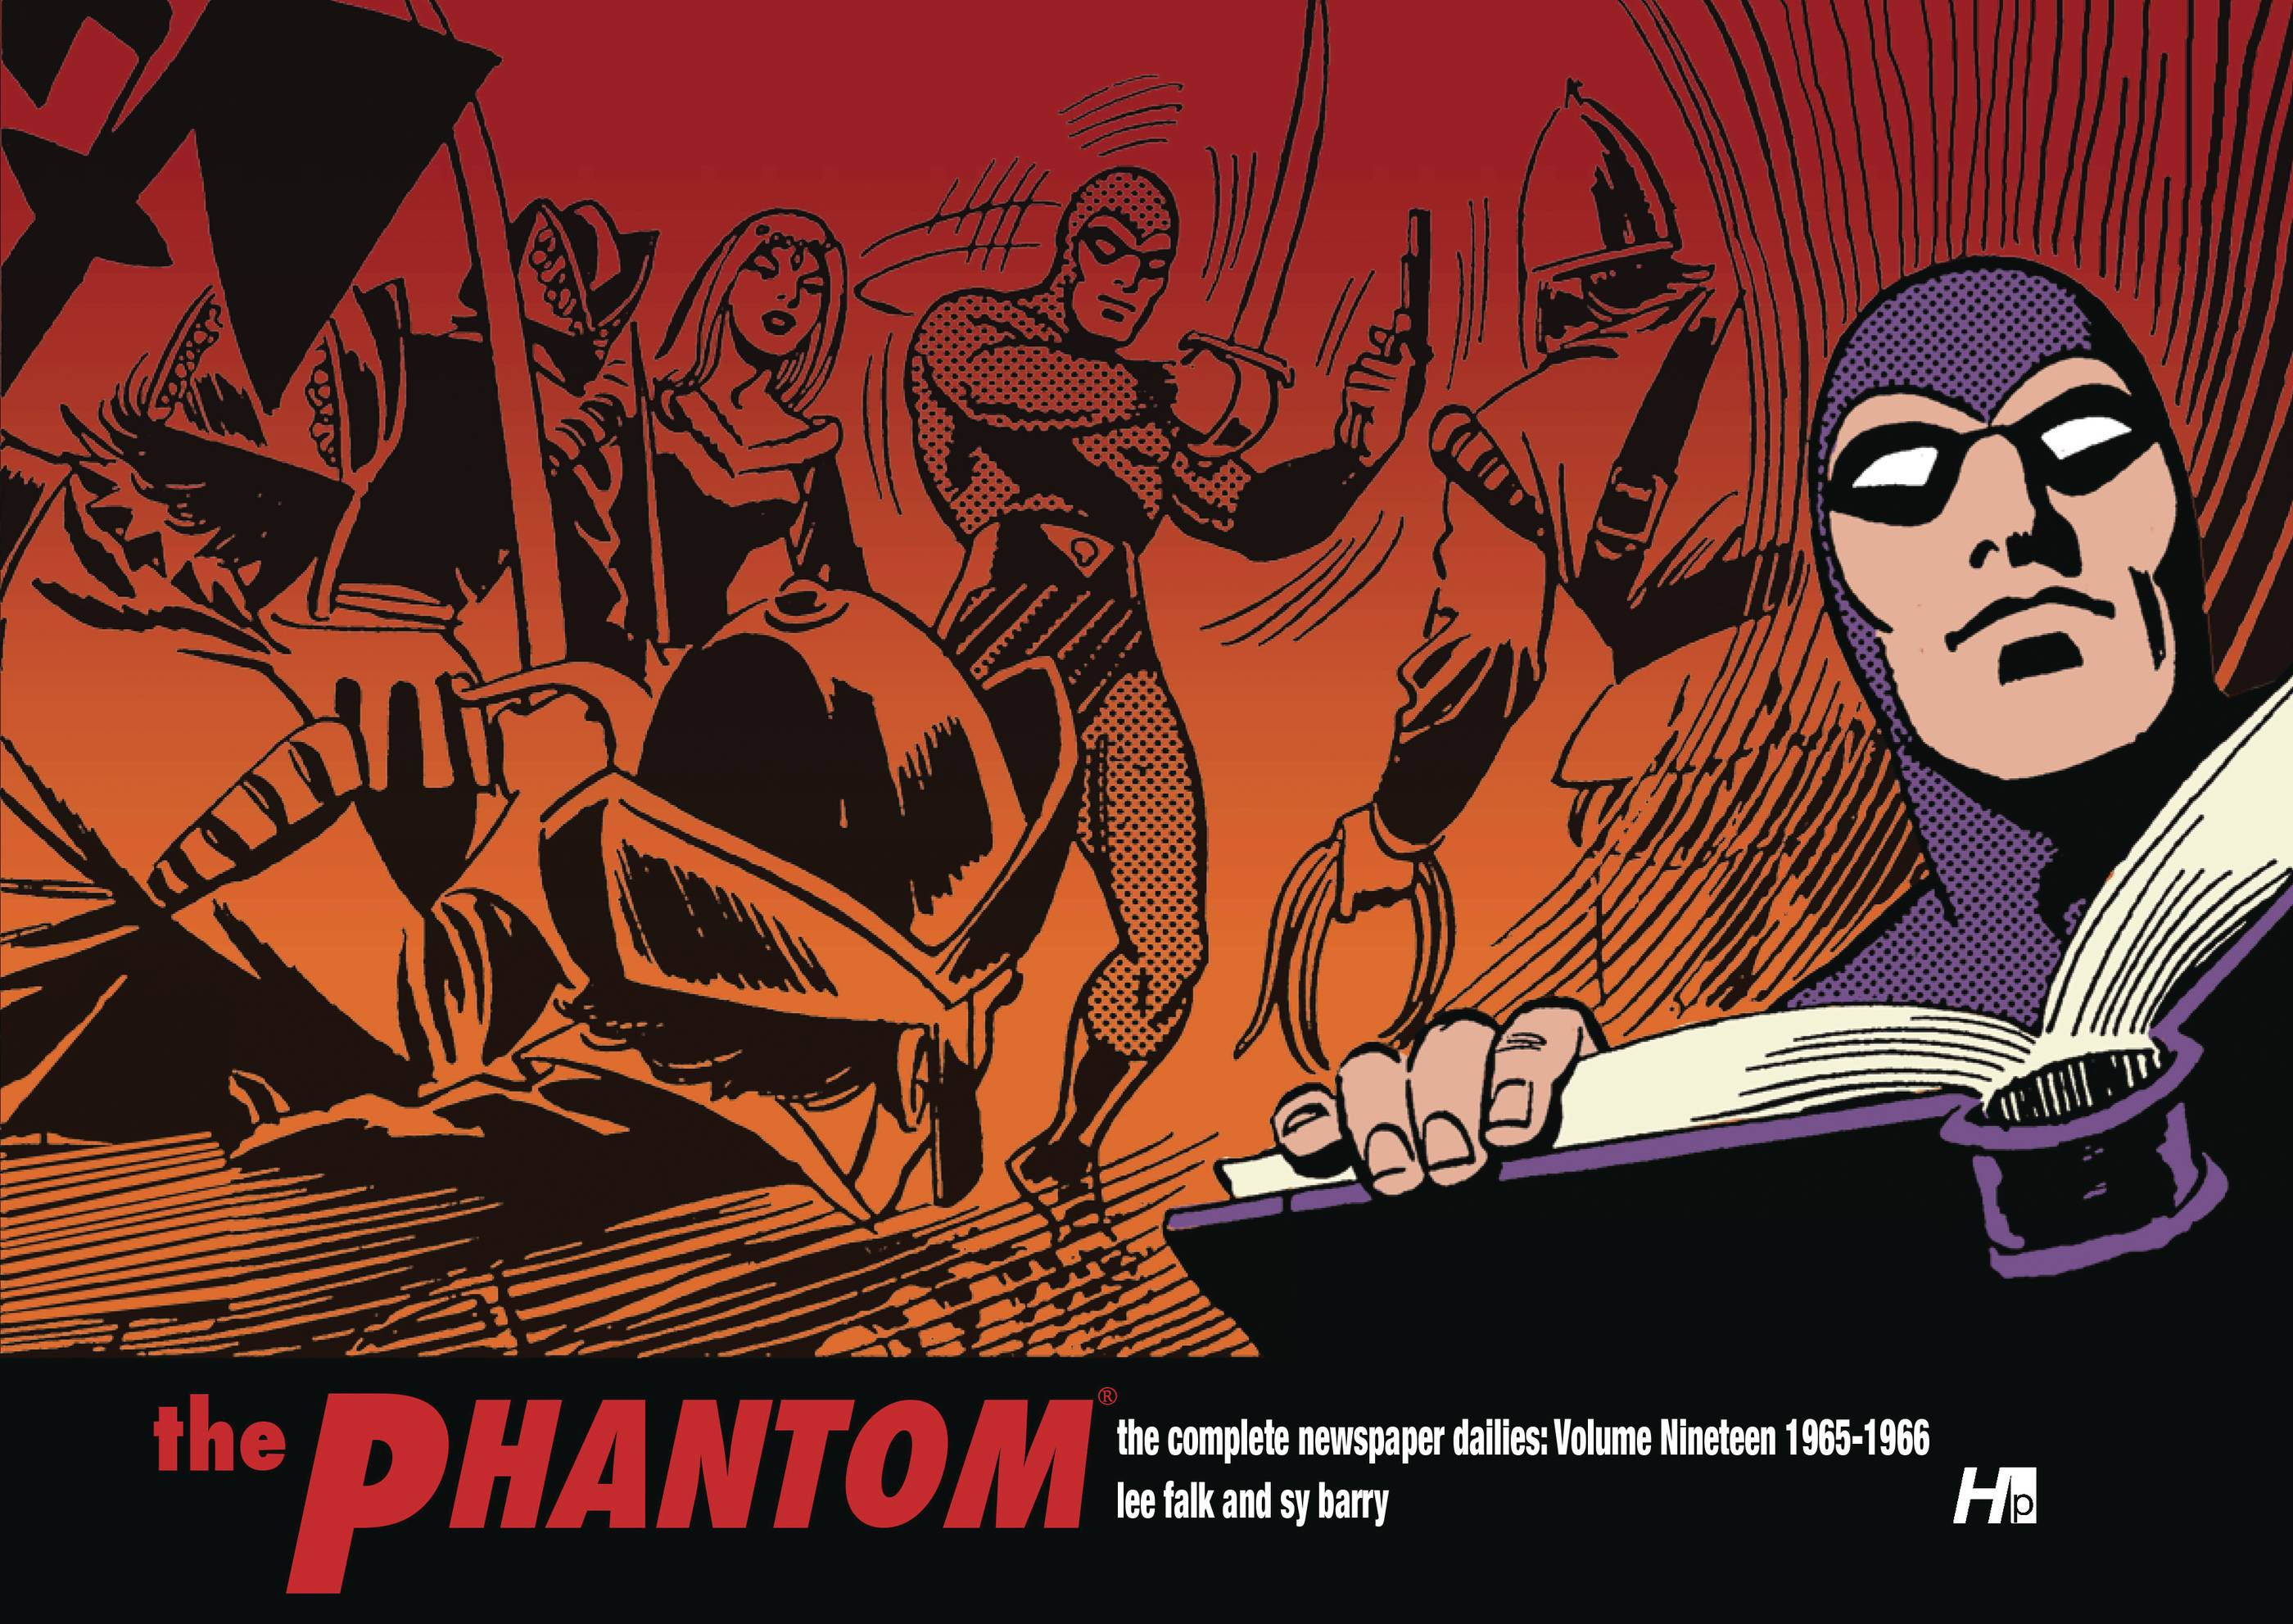 PHANTOM COMP DAILIES HC 19 1964-1966